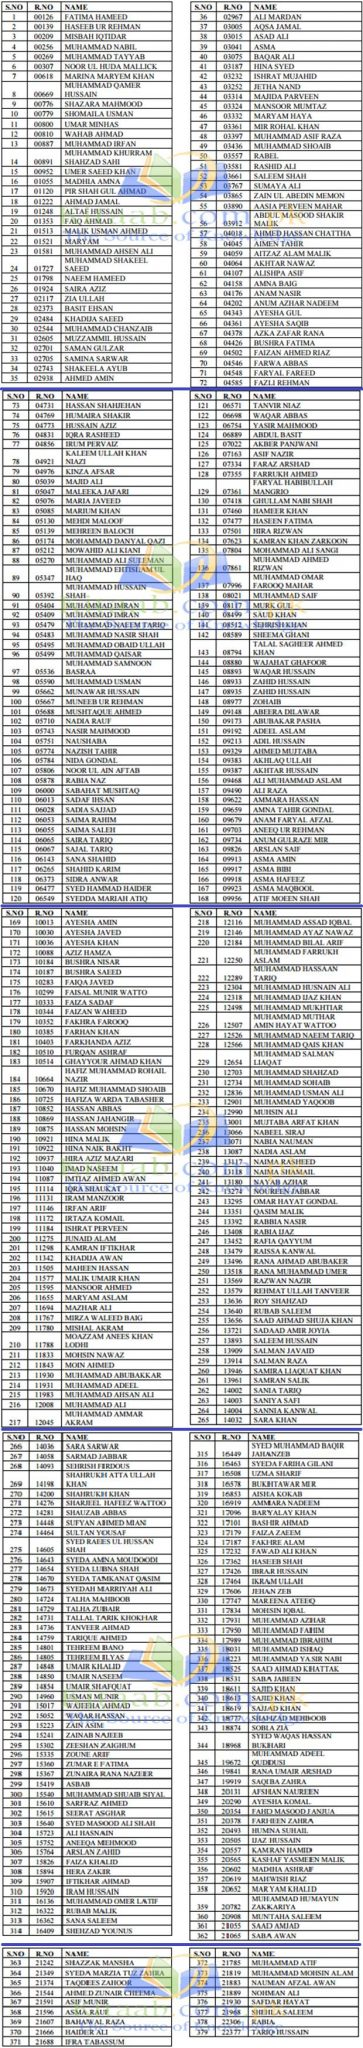 FPSC CSS Exams Result 2015 Toppers Name List and Marks Announced Online